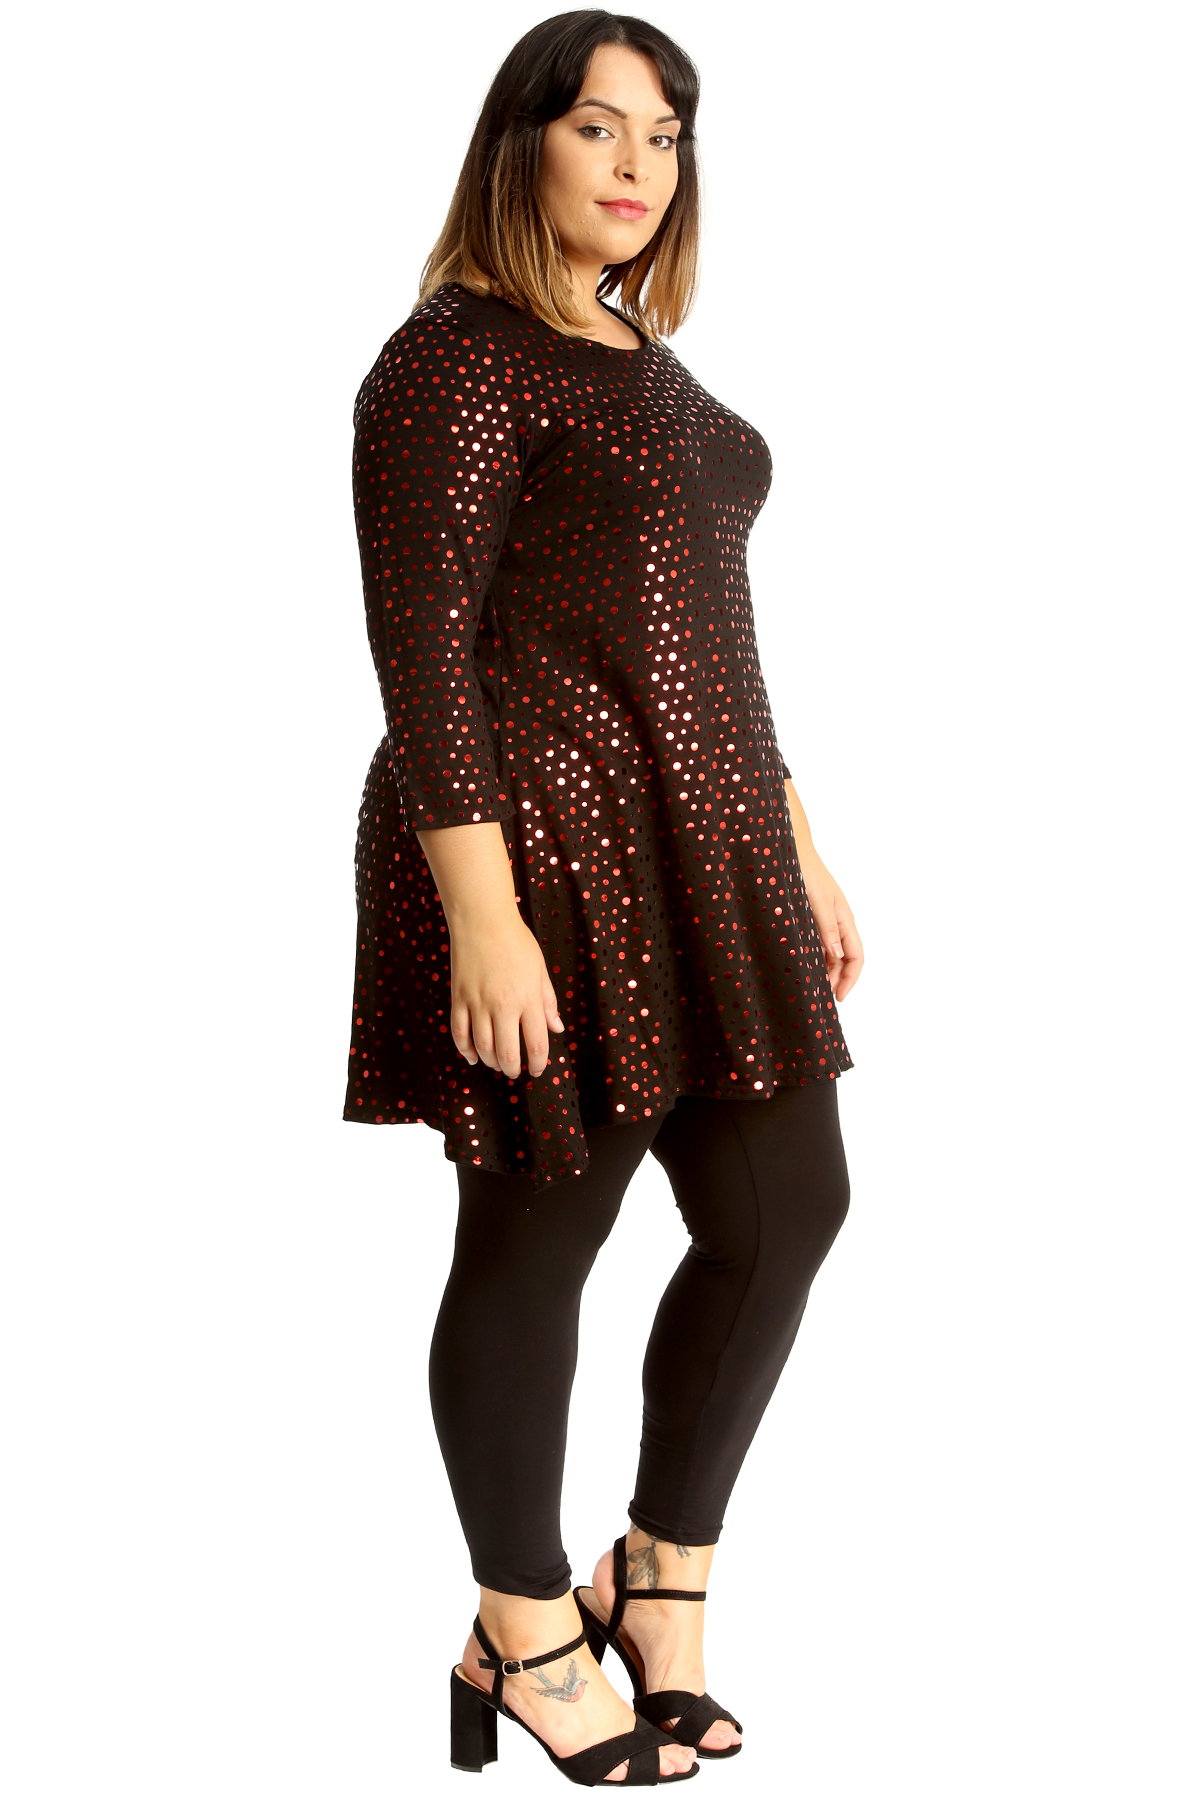 New Womens Plus Size Top Ladies Dot Foil Swing Style Skater Tunic Party Wear